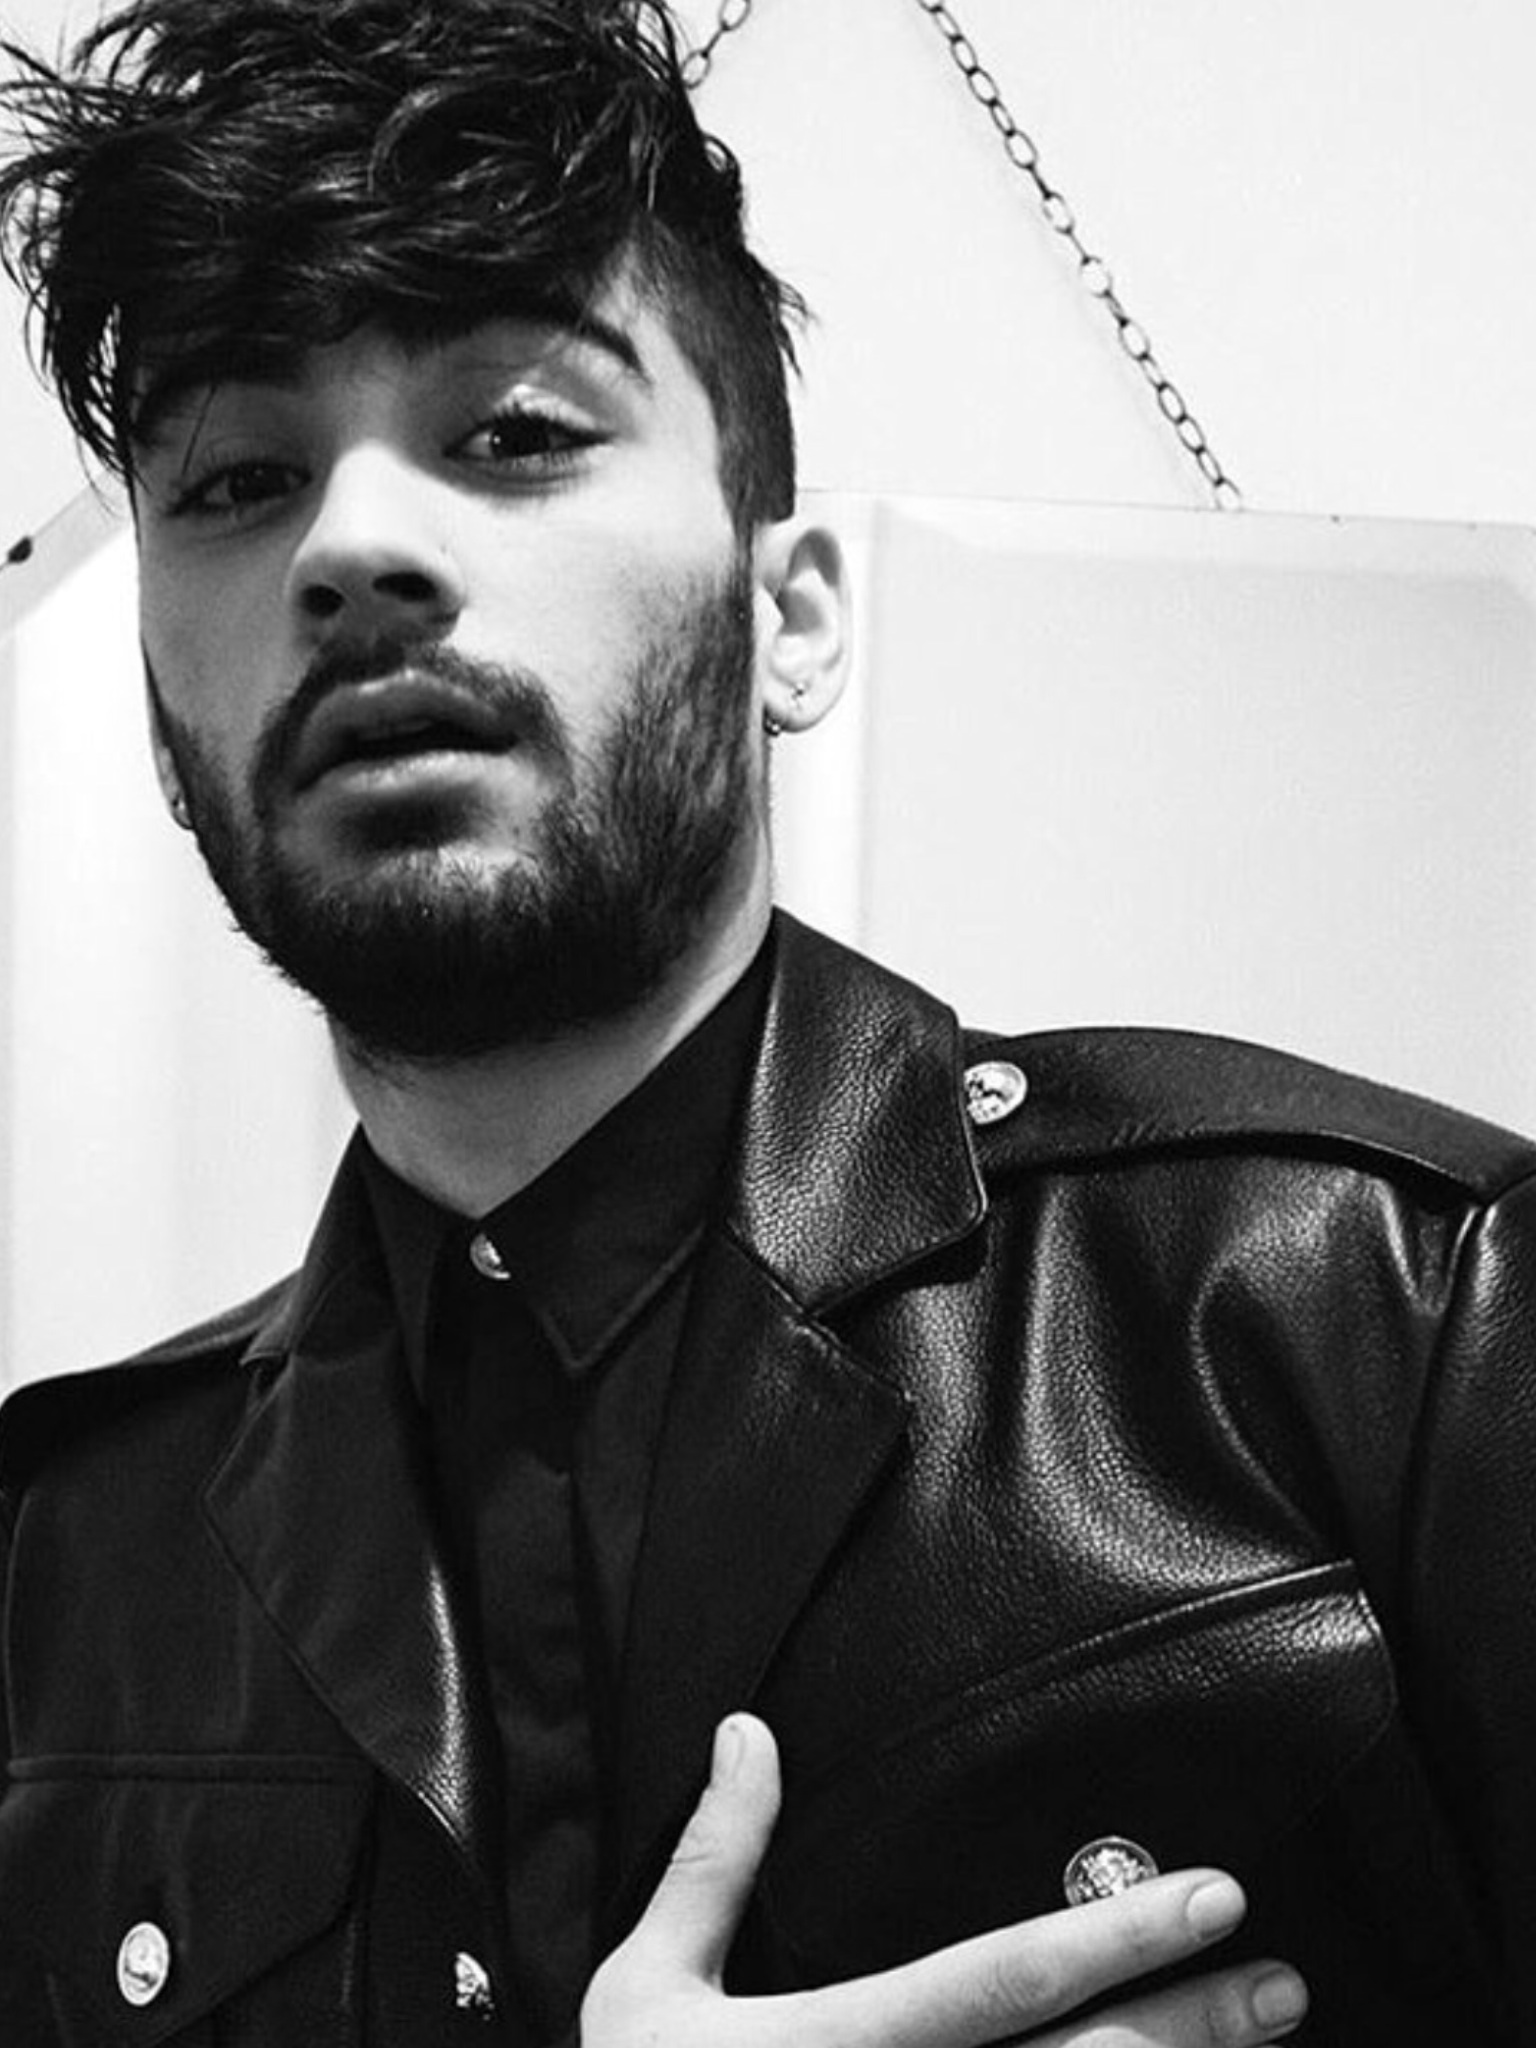 Black and white boy malik zayn zayn malik